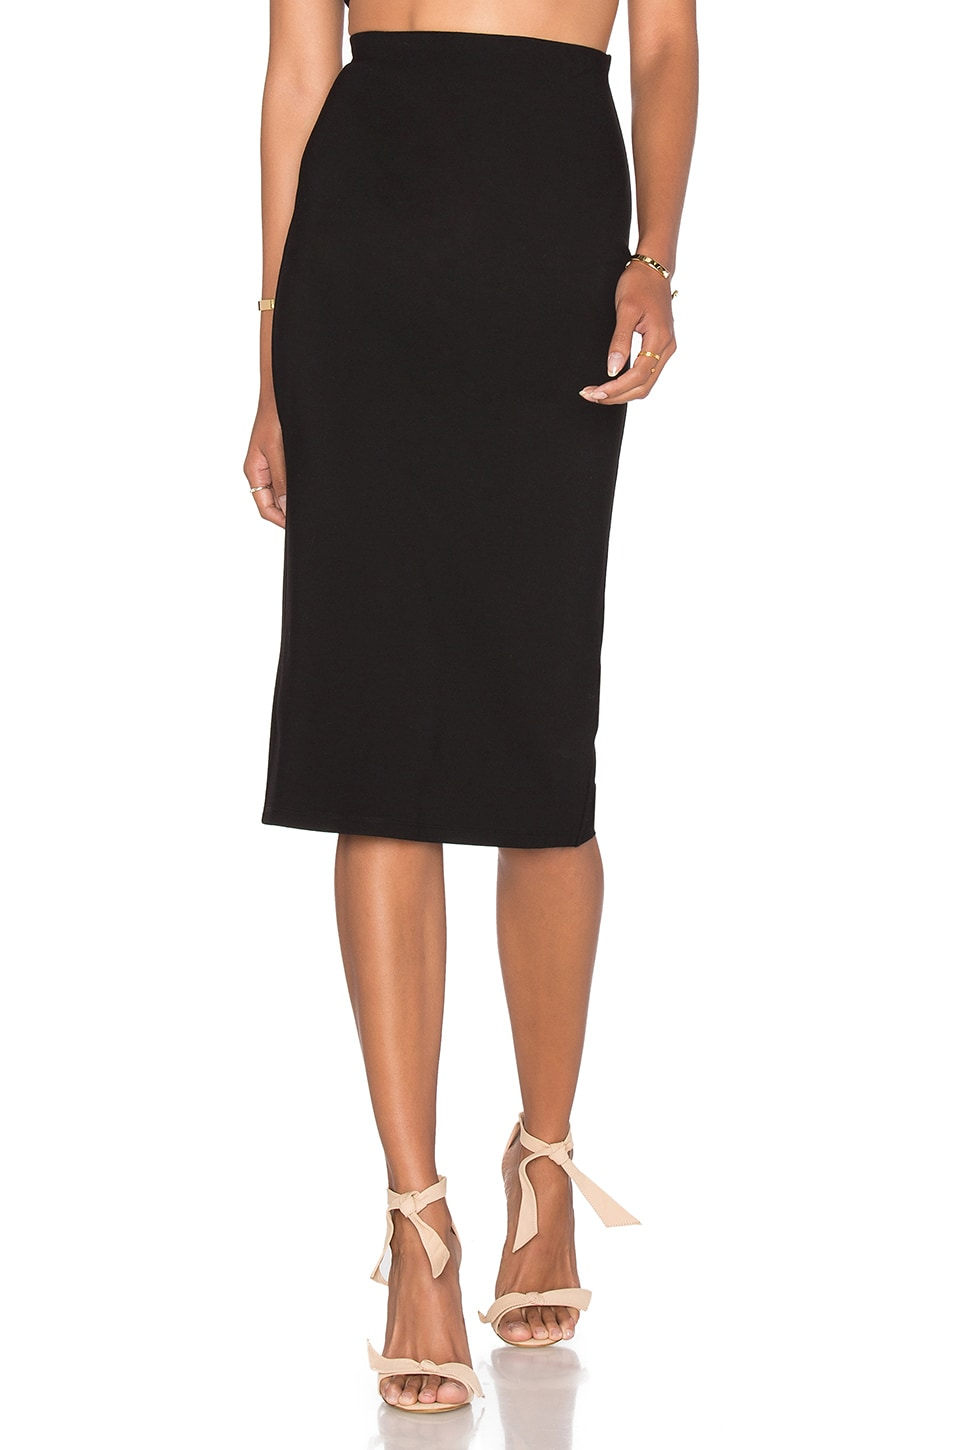 LPA Skirt 29 in Black